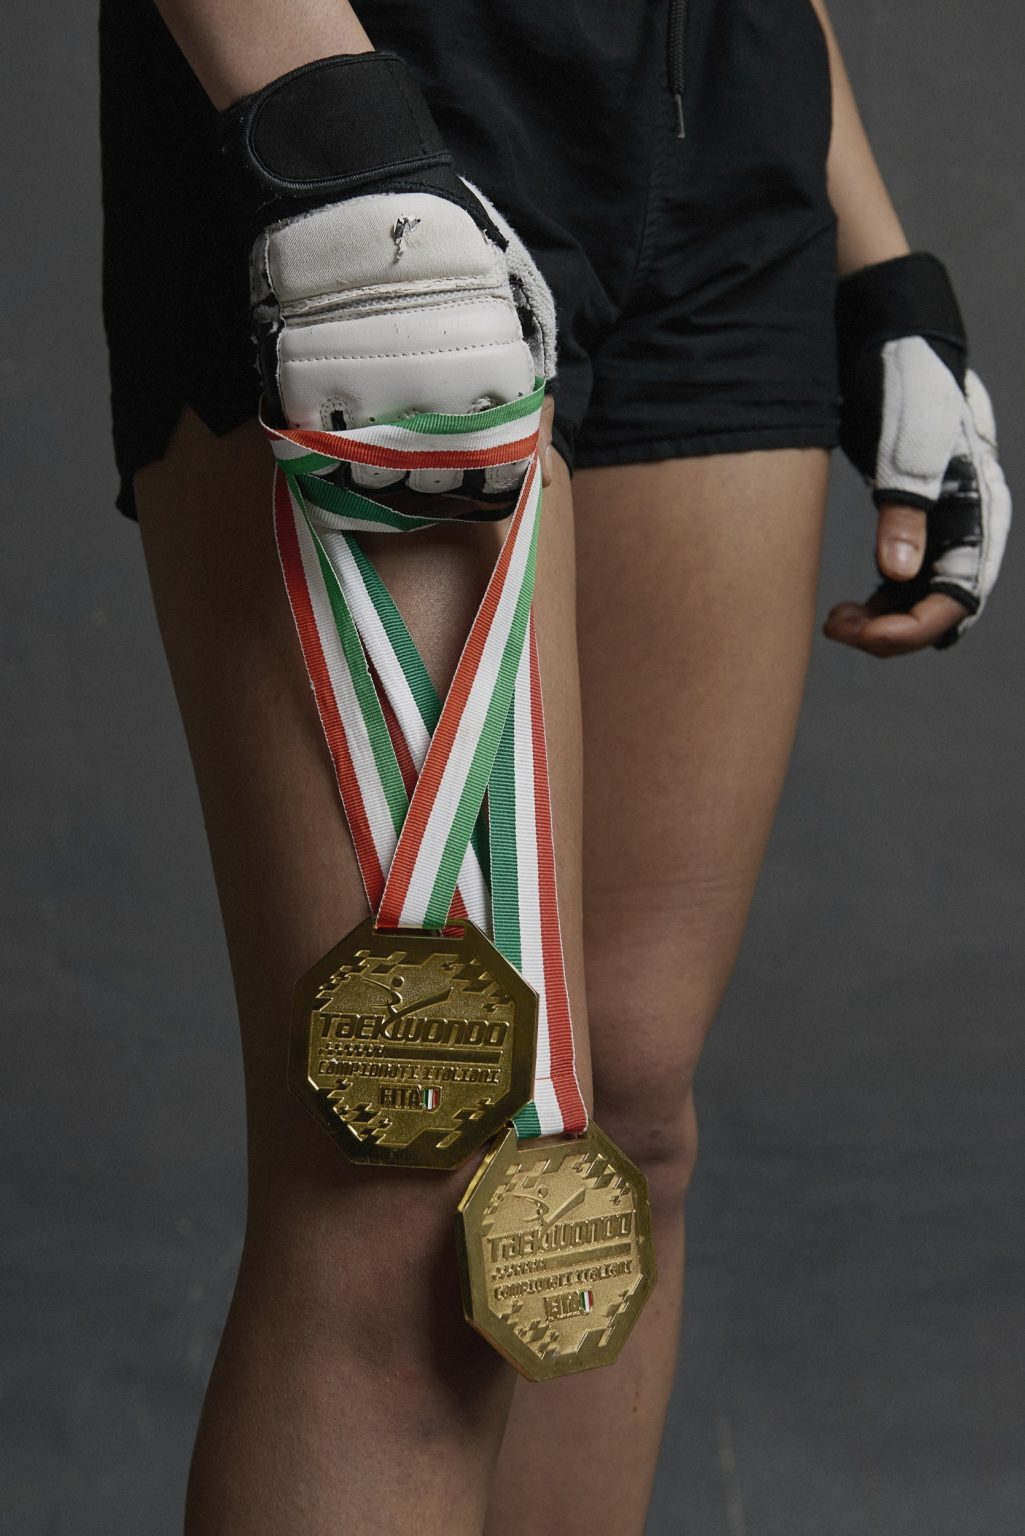 """""""My name is Youmna Nasri, I am 16 years old and I was born on July 2, 2004 in Rome. Still, since my parents are Tunisians, the Italian state does not consider me as Italian citizen. Italy is my country and I tried to honor it with taekwondo, the discipline I love and practiced since the age of five. I have been twice Italian champion in the junior category up to 44 kilograms, achieving the II dan black belt. But, despite the perseverance and love, I can't represent my country in European or world competitions, because I'm not italian! It is madness that I cannot carry up the flag of my country abroad. Because my country, the one that raised me and made me champion, does not recognize me. I just would like to do what I love and compete for Italy without feeling discriminated""""."""